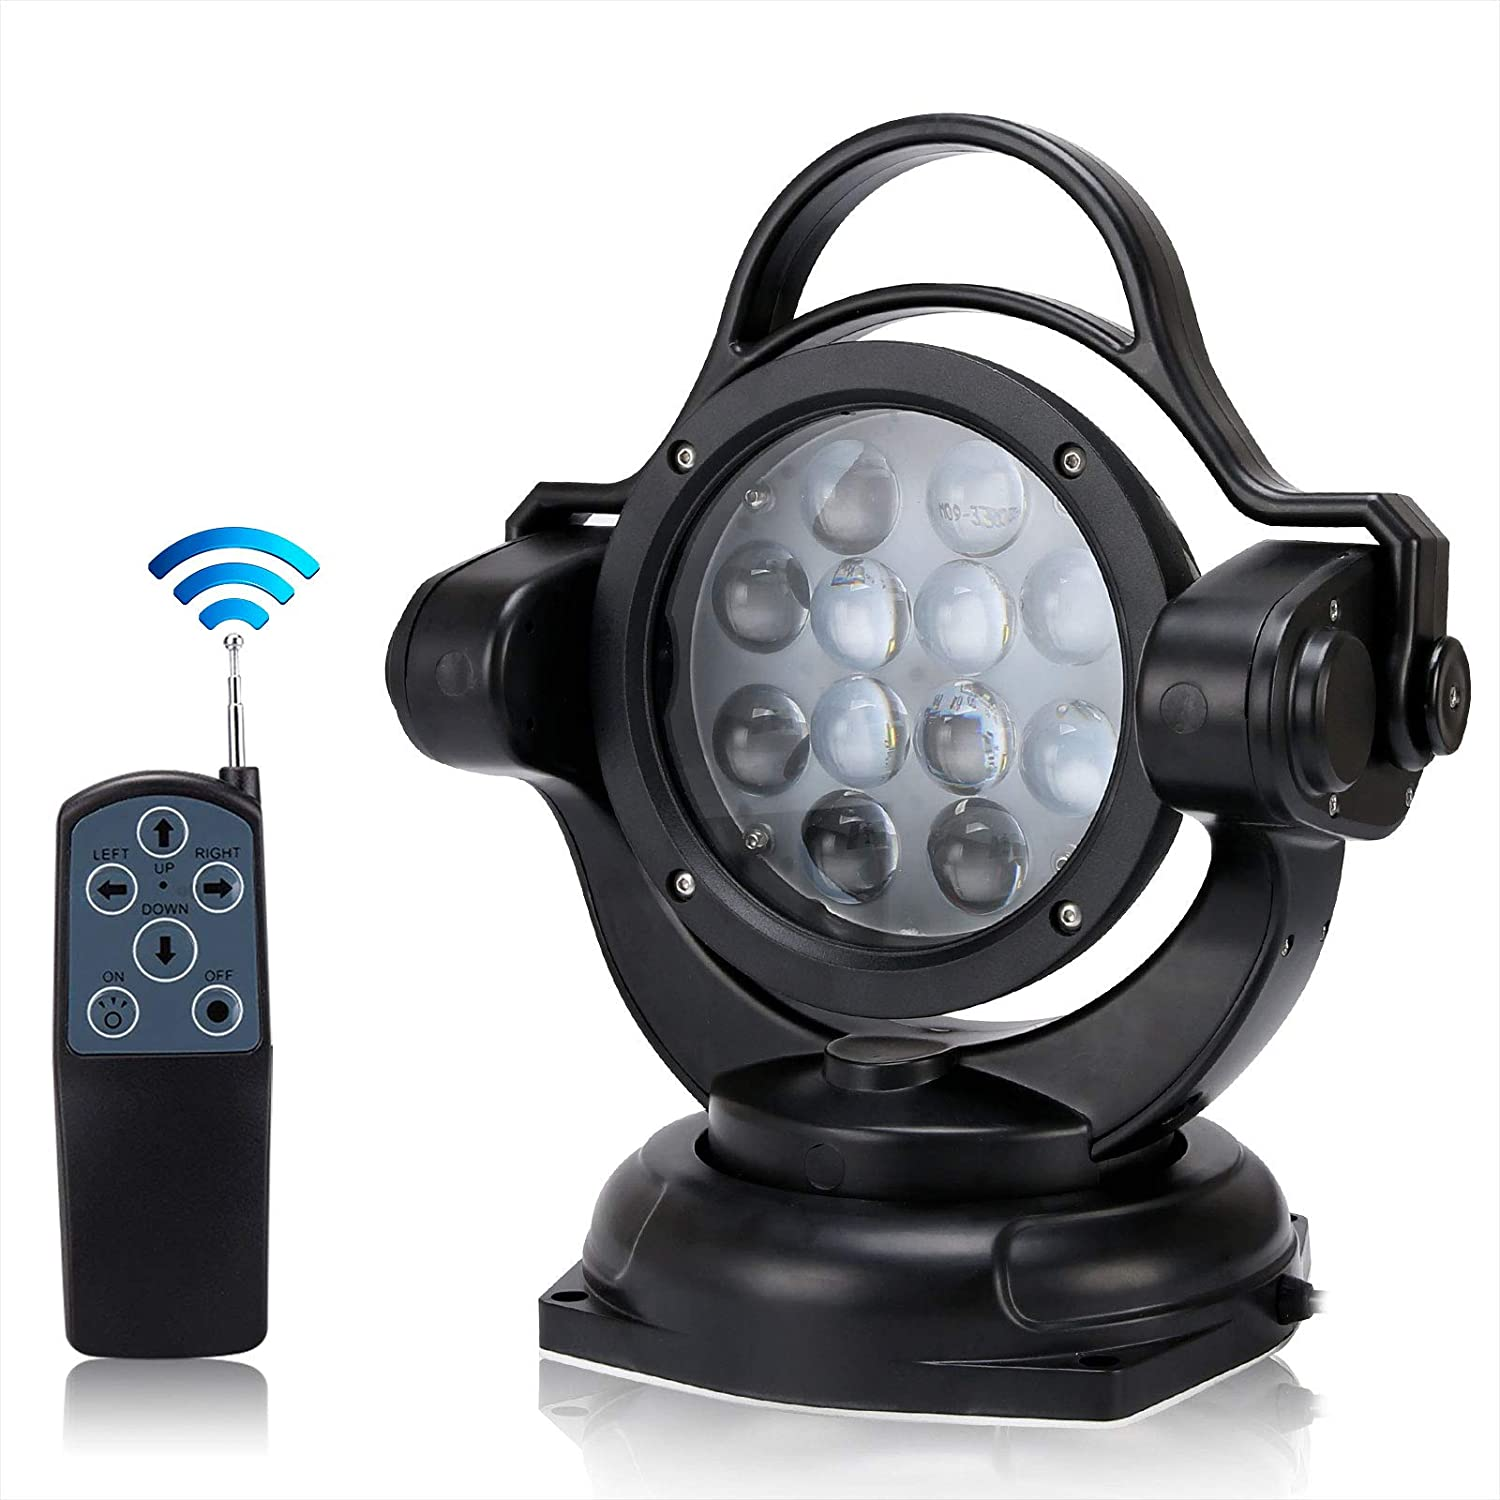 Amazon.com: SUPAREE Wireless Remote Control Searchlight 5000LM 12V 24V 60W  360º Cree LED Rotating Remote Control Work Light Spot for SUV Off-Road  Trucks Boat Home Security Farm Field Protection Emergency Lighting: Home